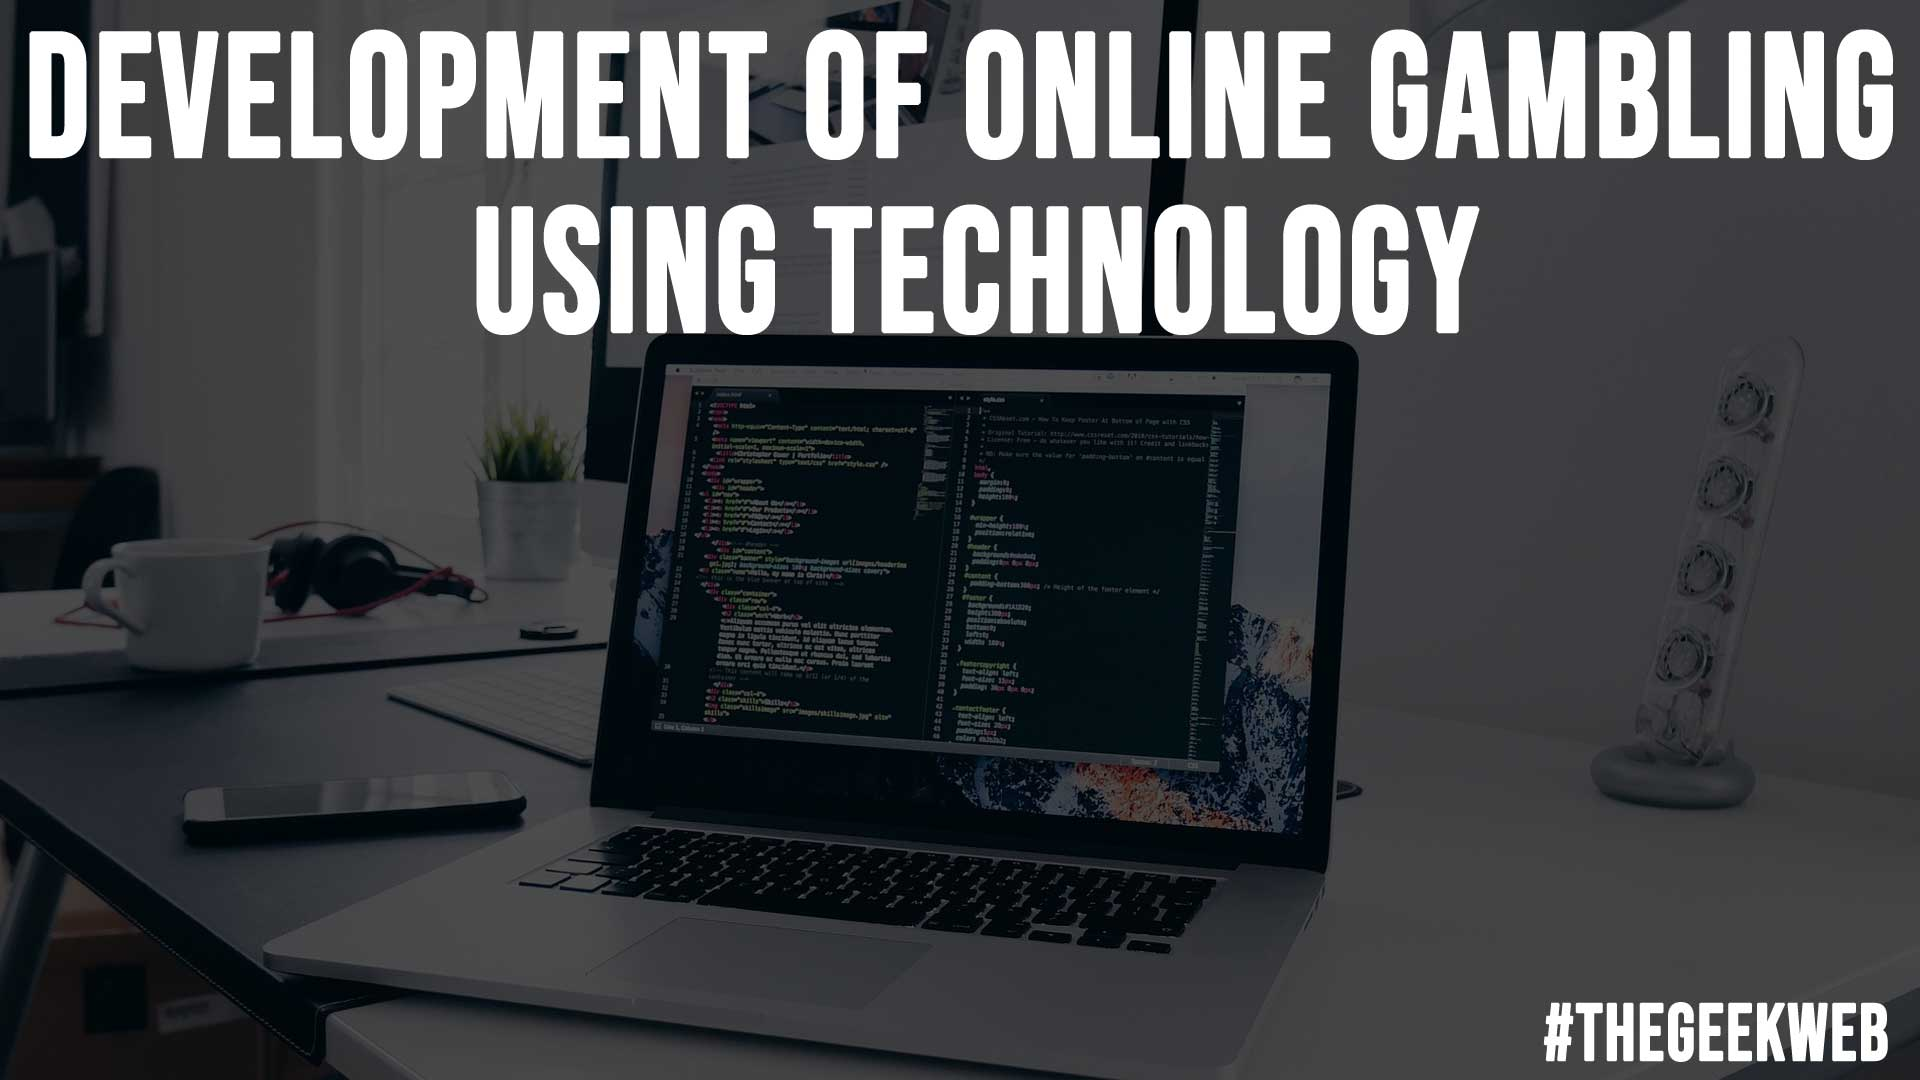 Development of Online Gambling Using Technology